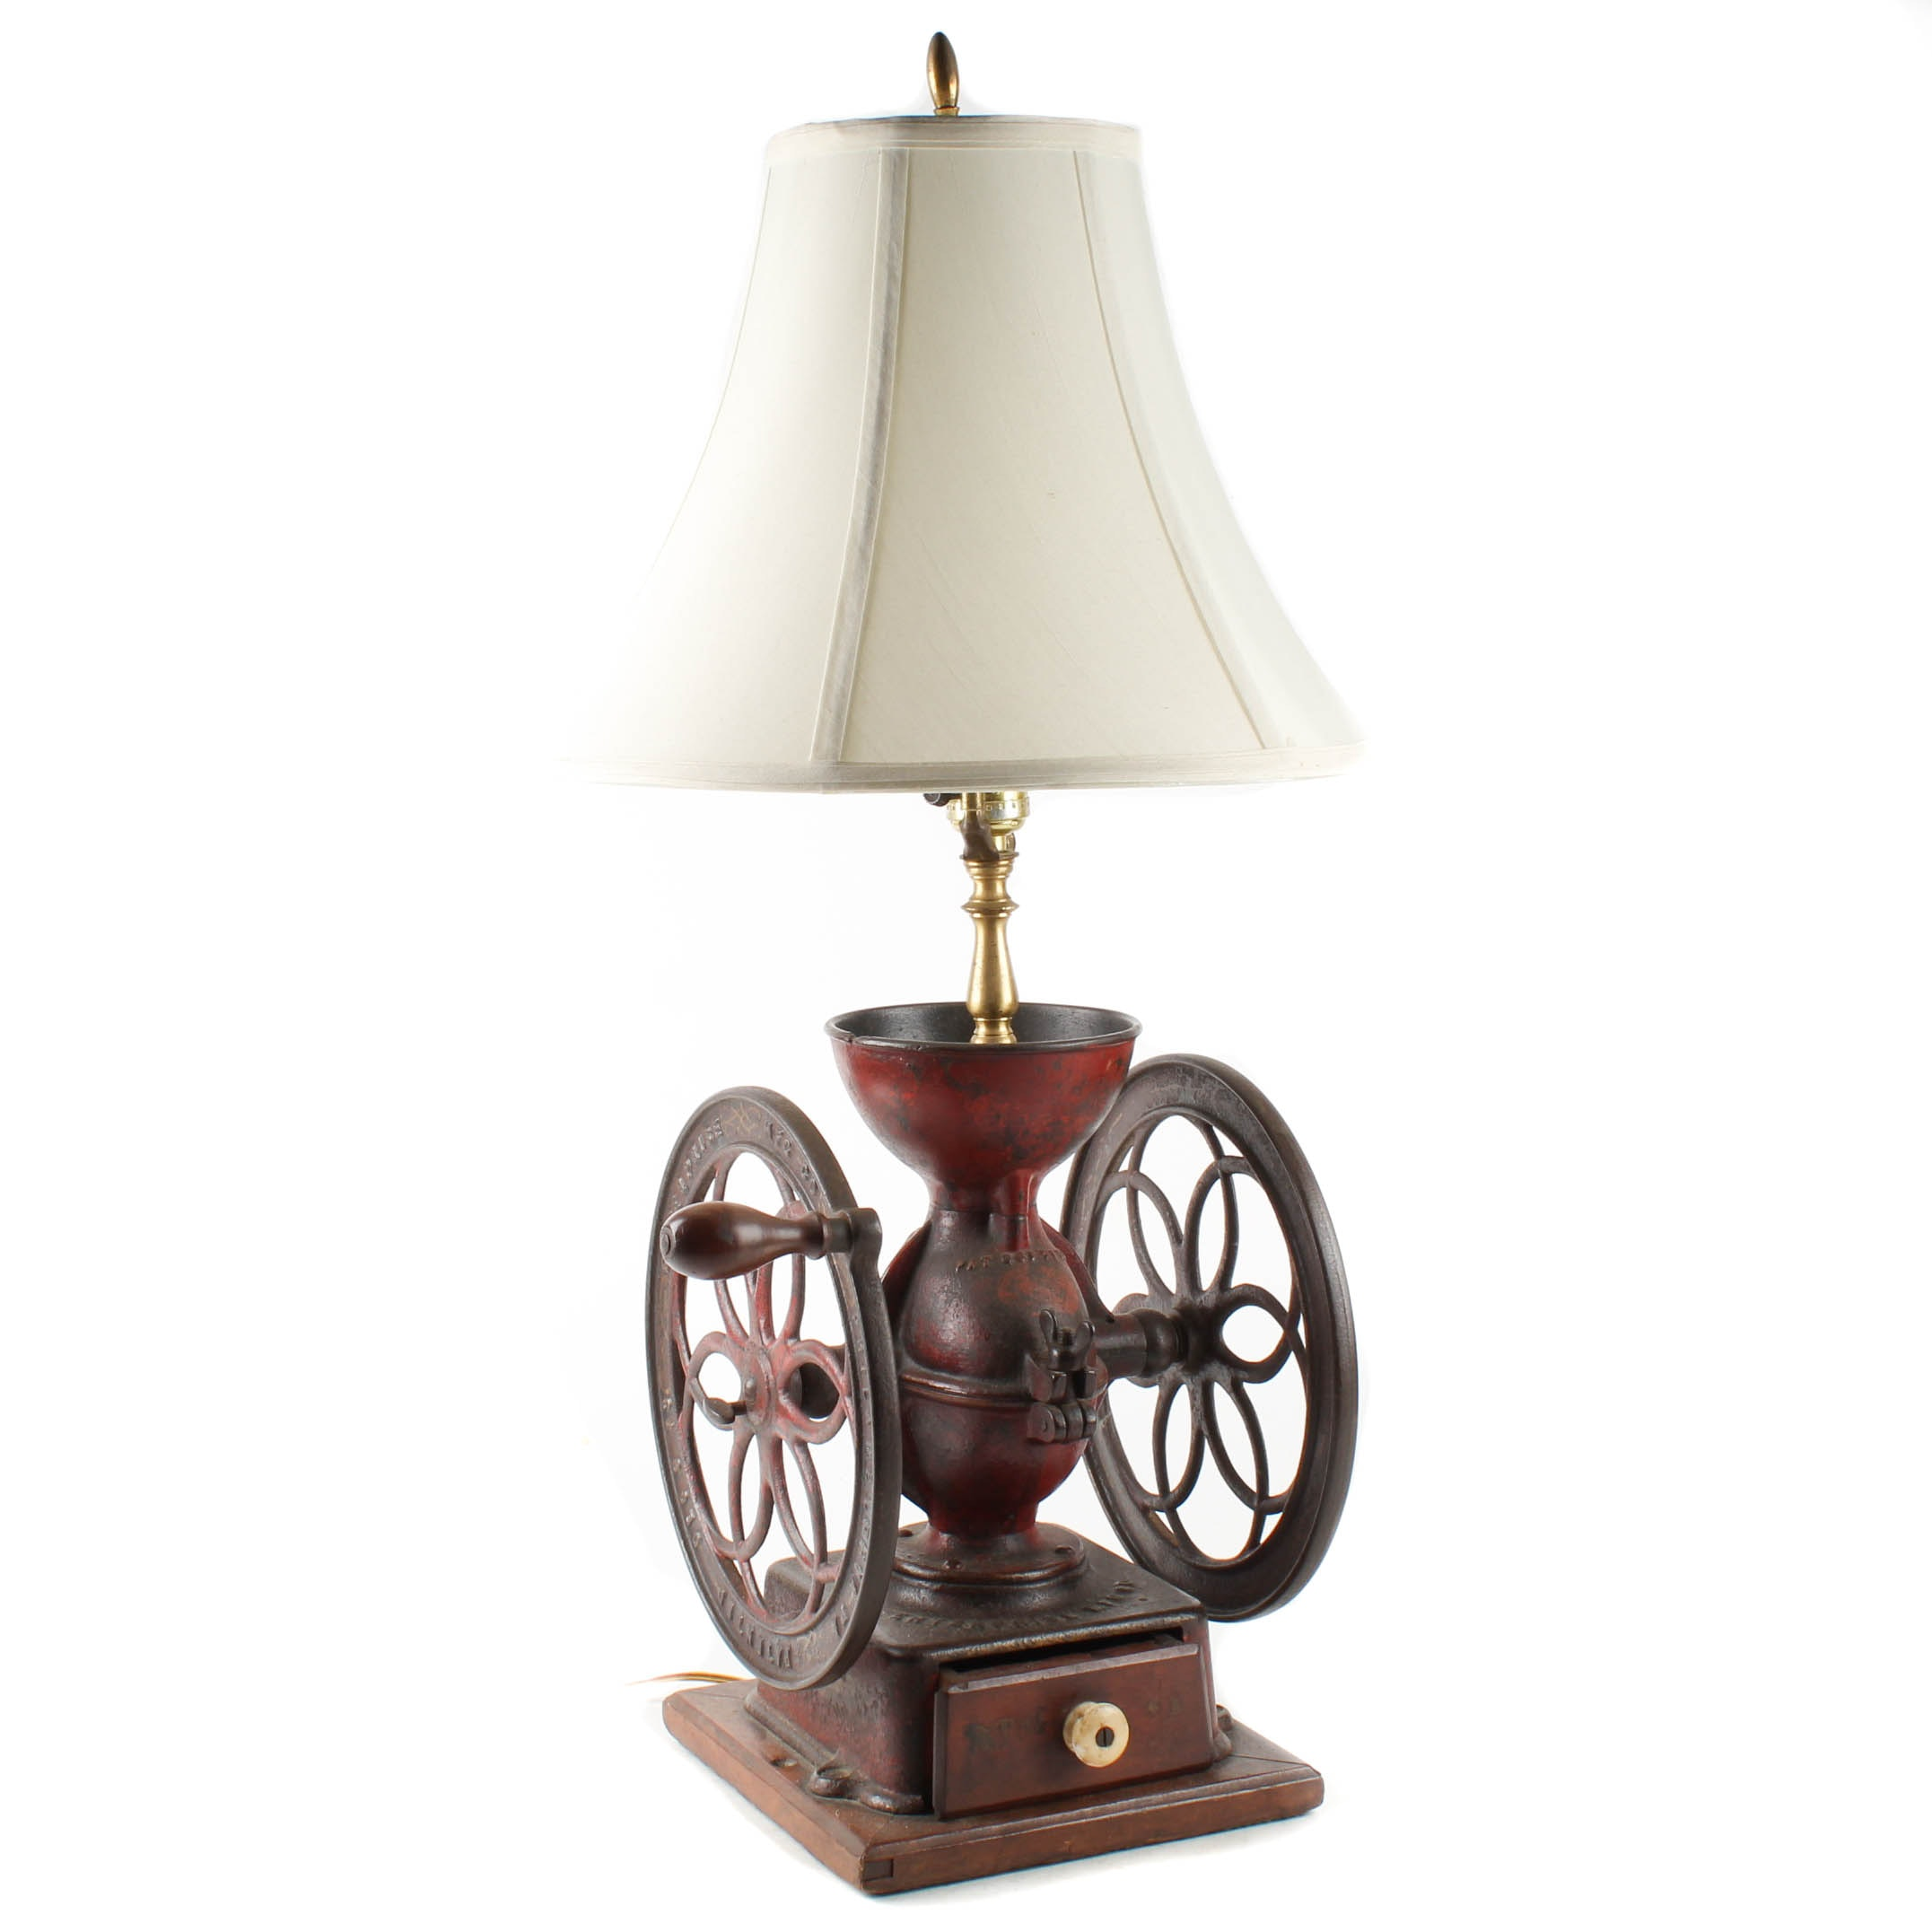 Converted Antique Coffee Grinder Table Lamp